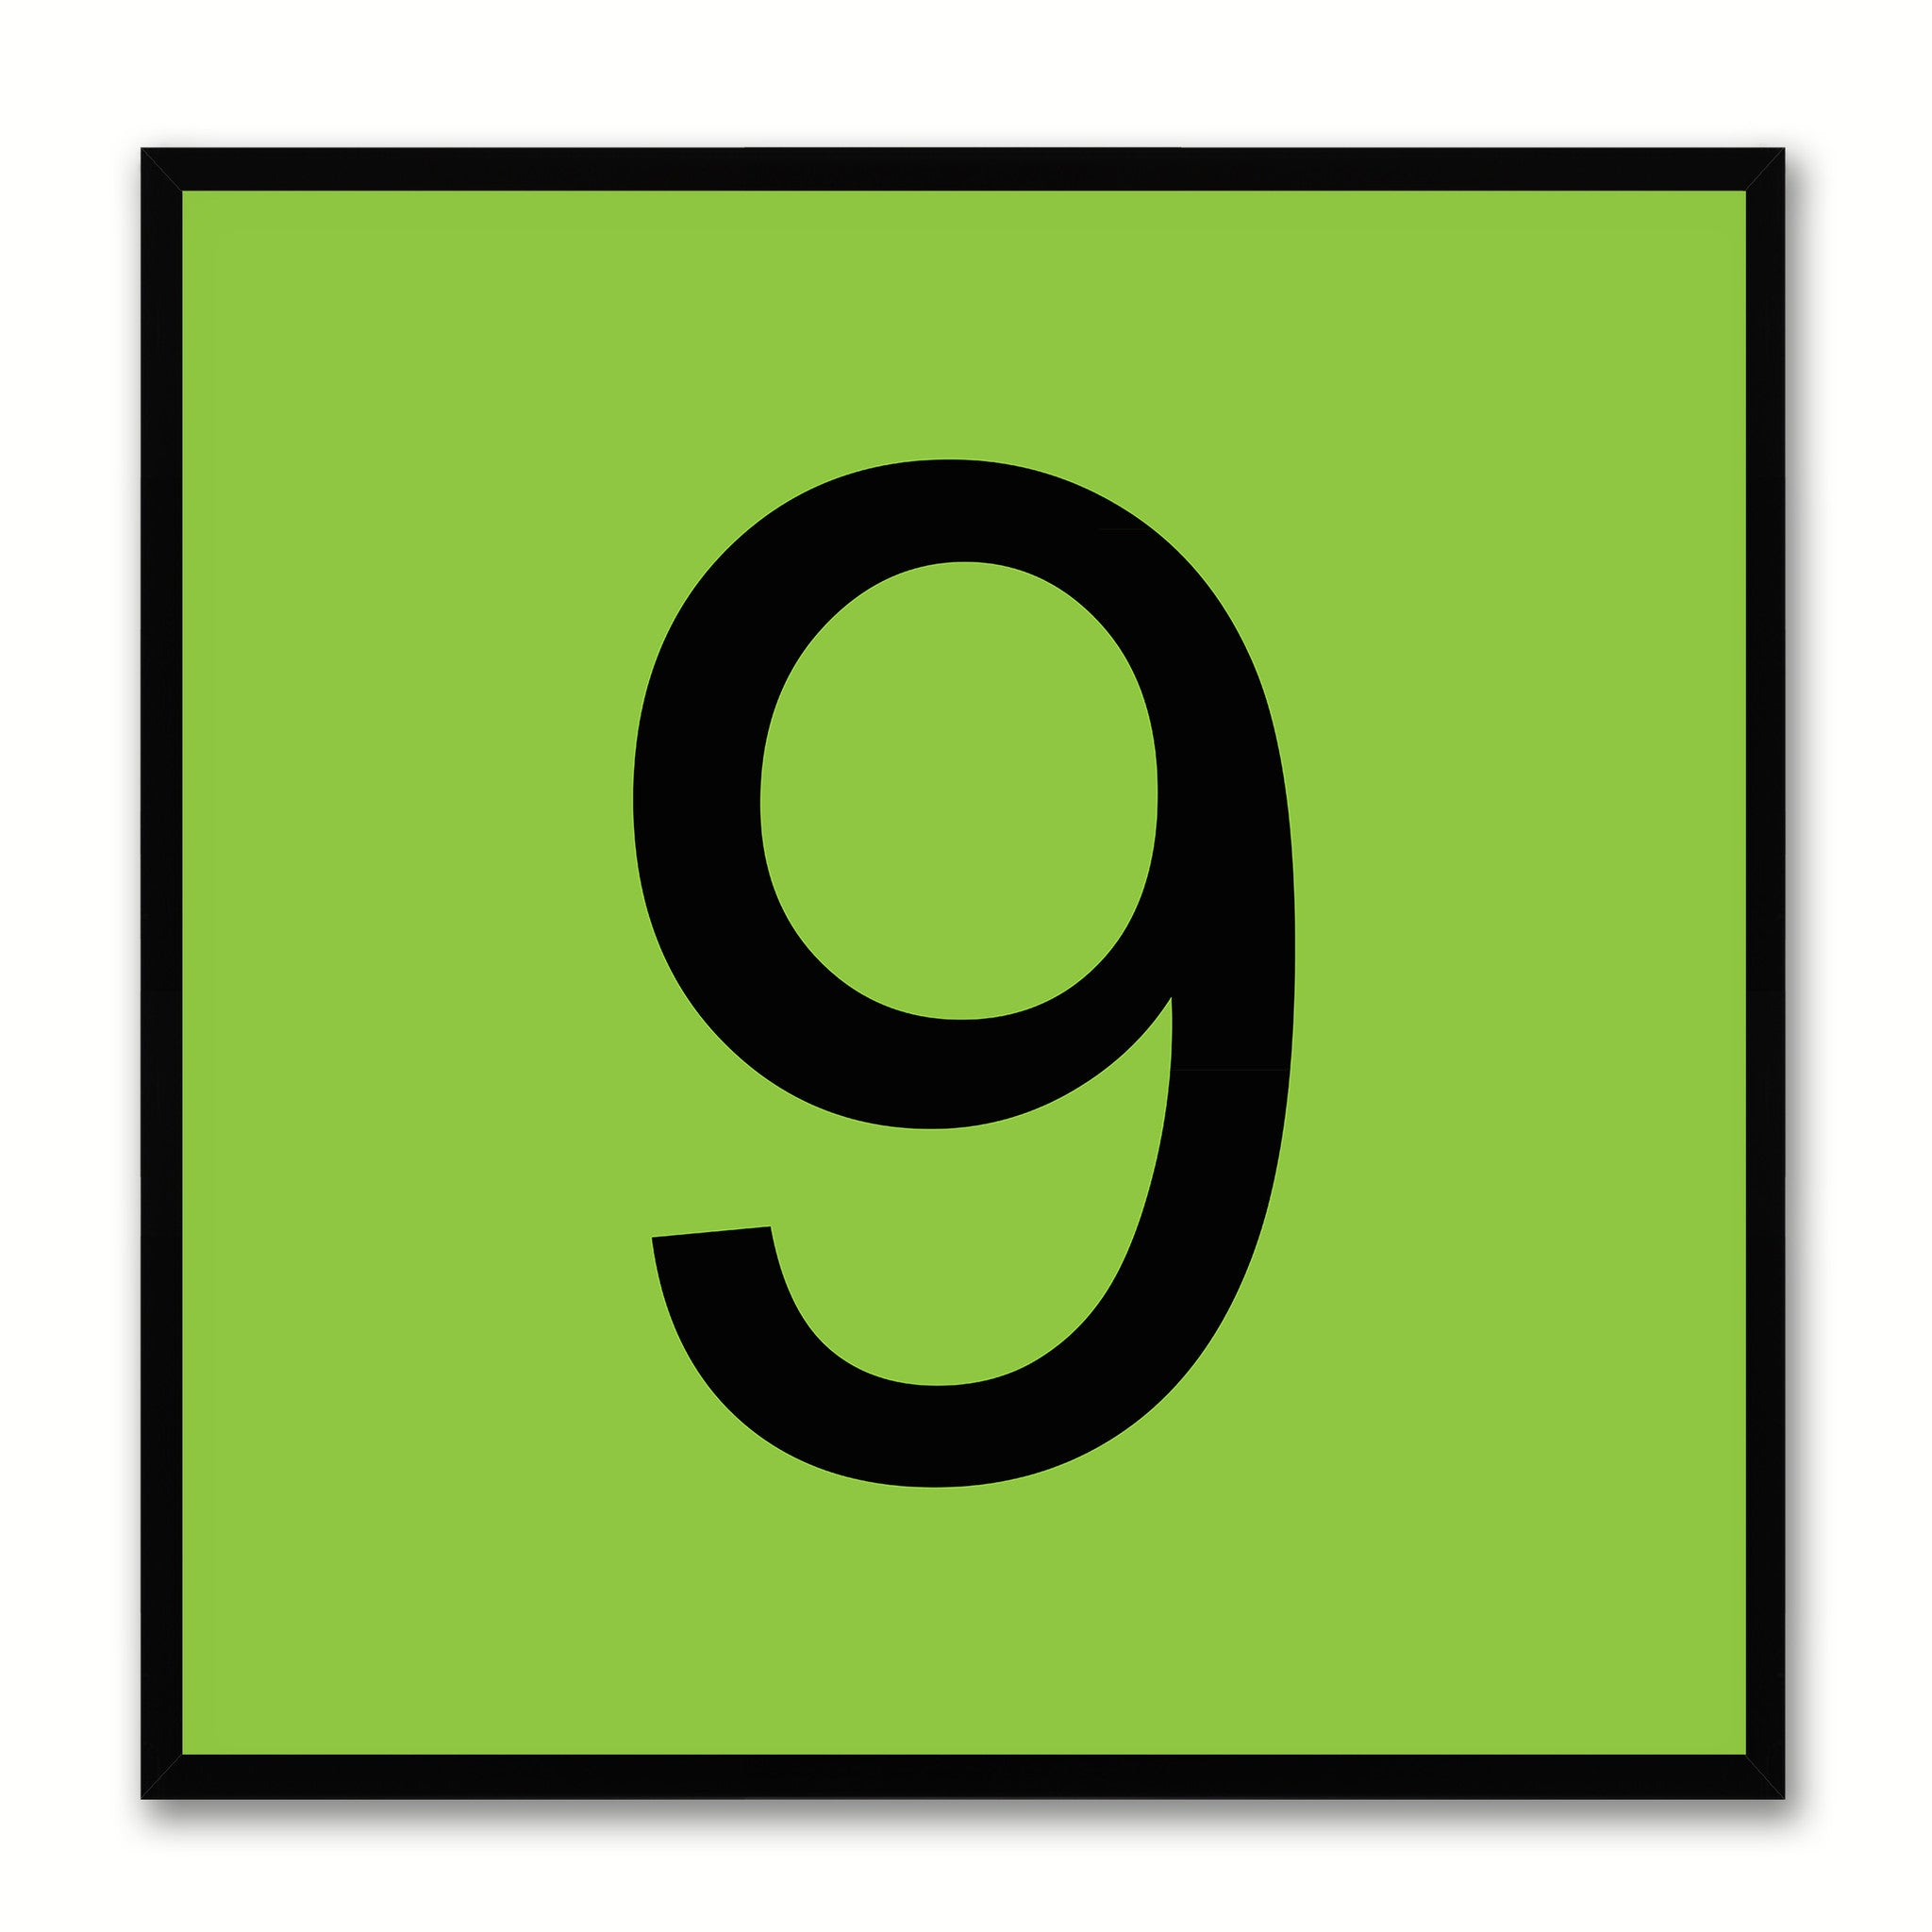 Number 9 Green Canvas Print Black Frame Kids Bedroom Wall Décor Home Art